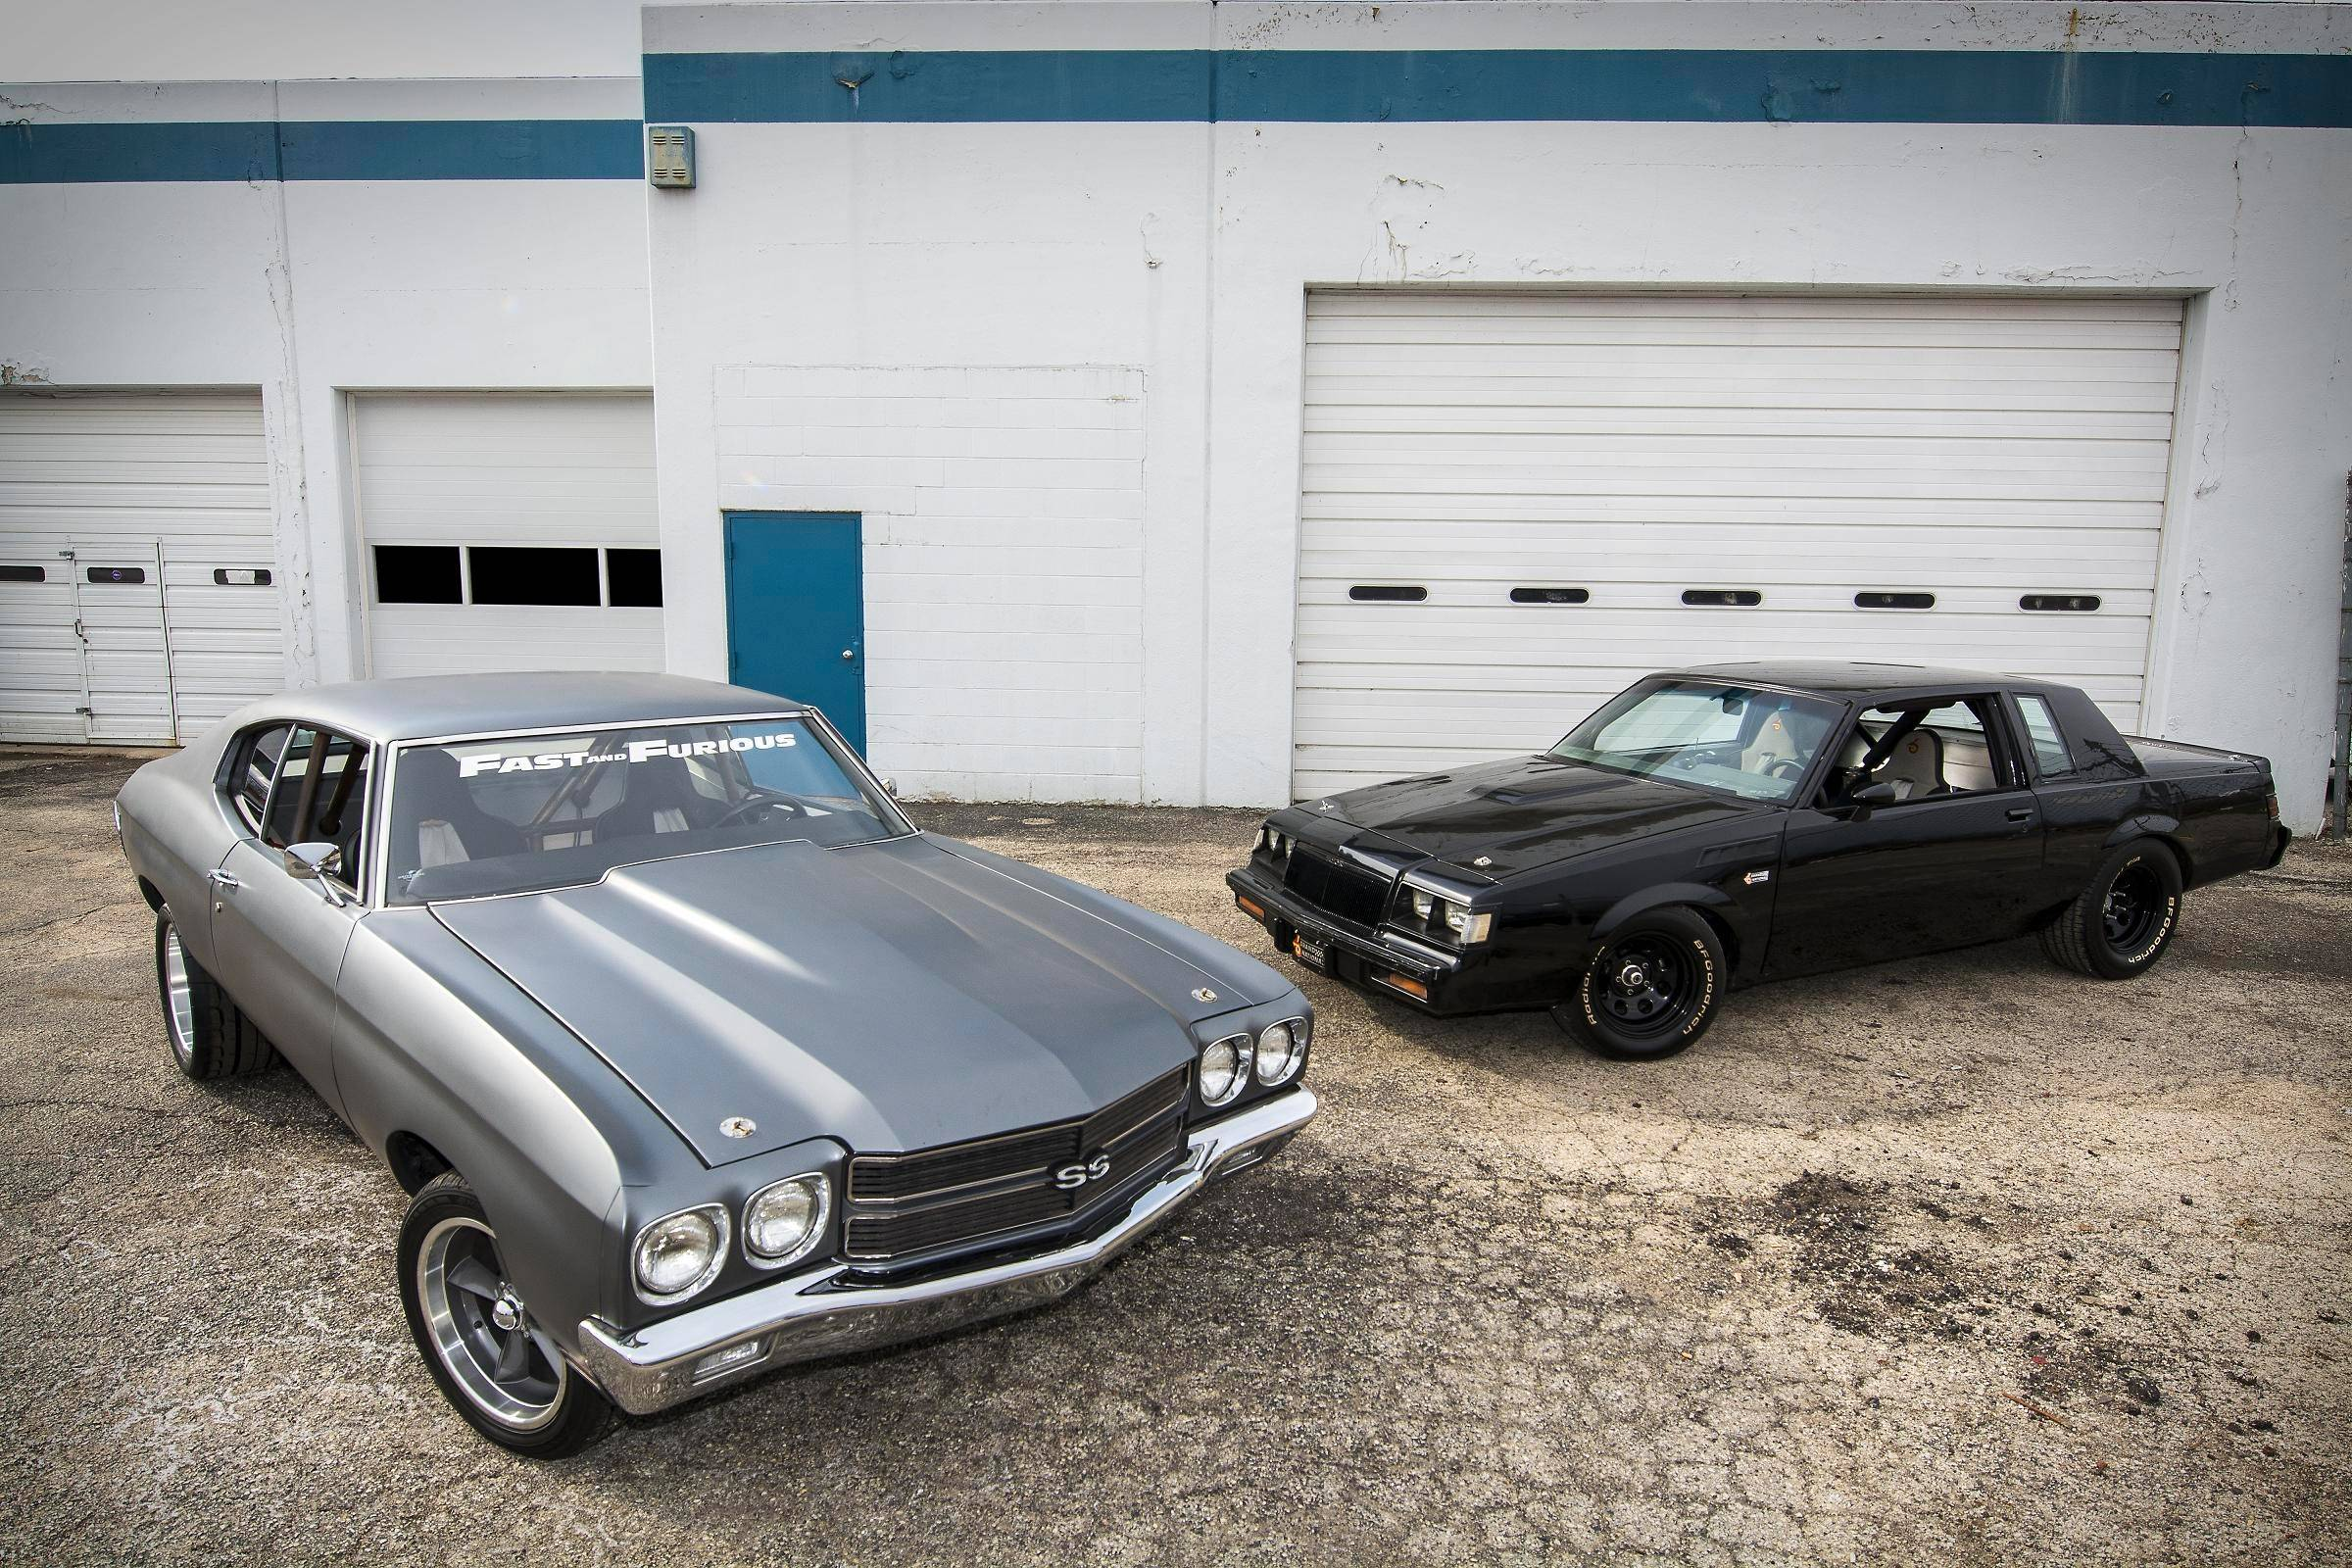 1970 Chevrolet Chevelle SS and 1984 Buick Grand National